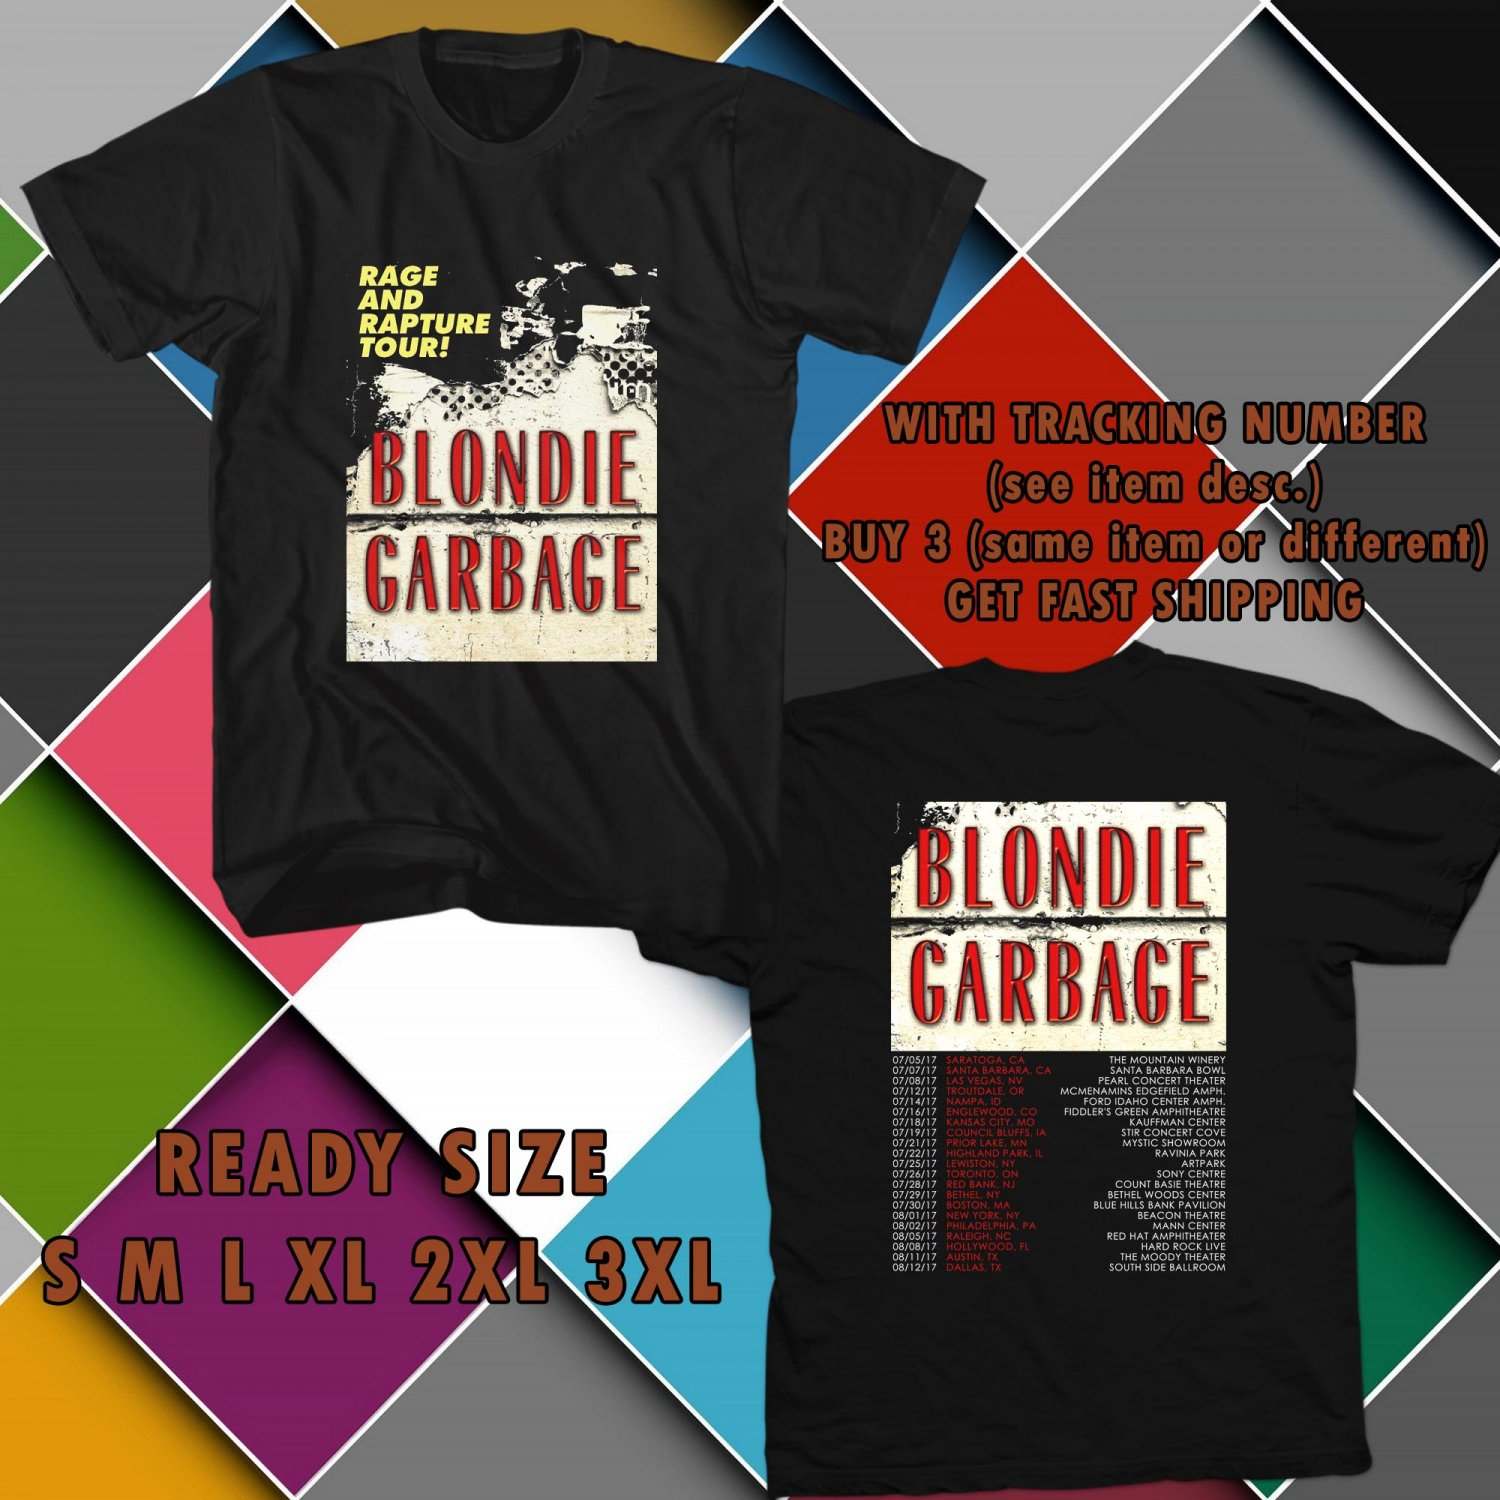 WOW BLONDIE AND GARBAGE RAGE AND RAPTURE TOUR 2017 BLACK TEE S-3XL ASTR